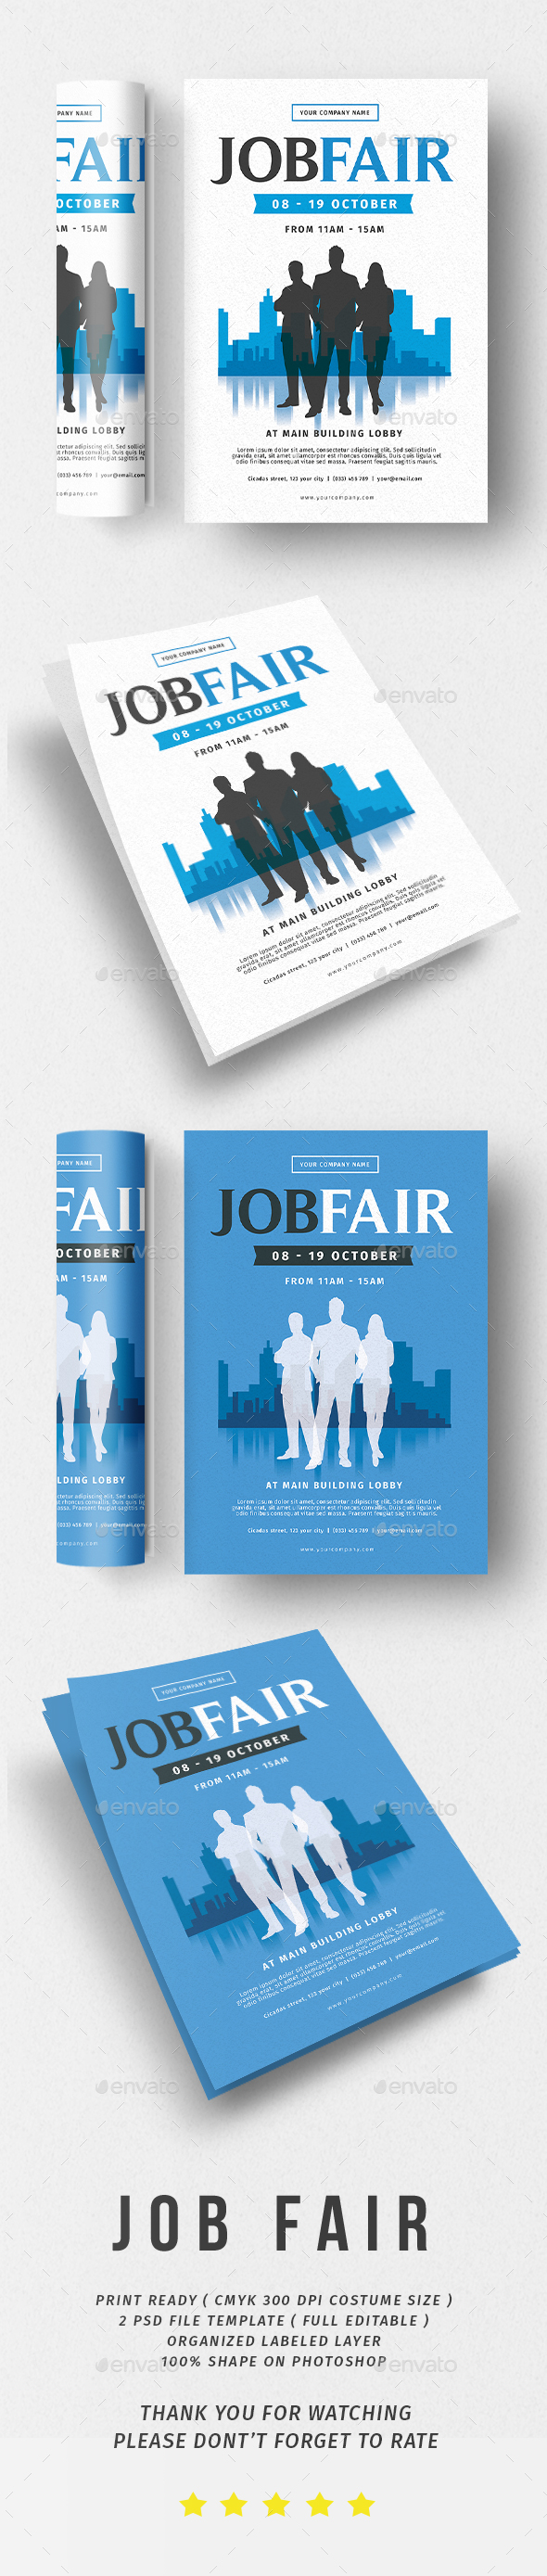 Job Fair Flyer - Flyers Print Templates